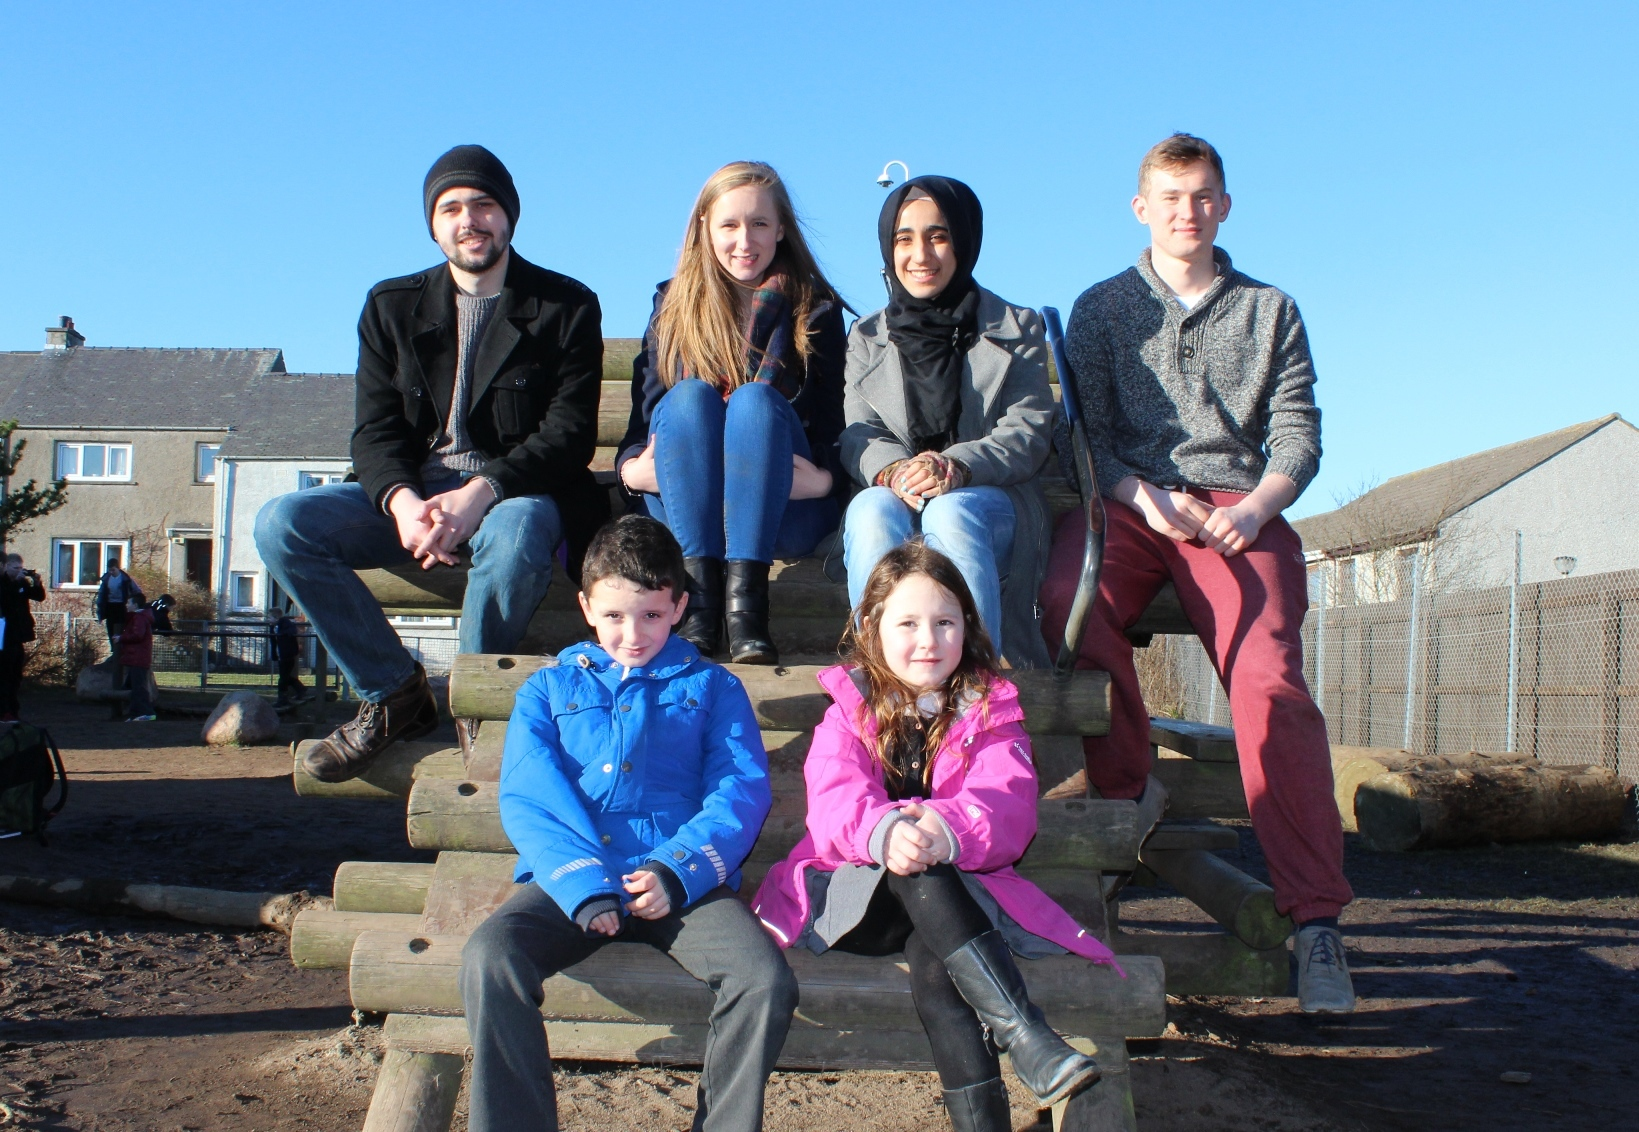 Students David Milne, Sophie Houston, Alaa Beruwien and Tom Perritt, with Portlethen youngsters Euan Brown and Lola McBeath.